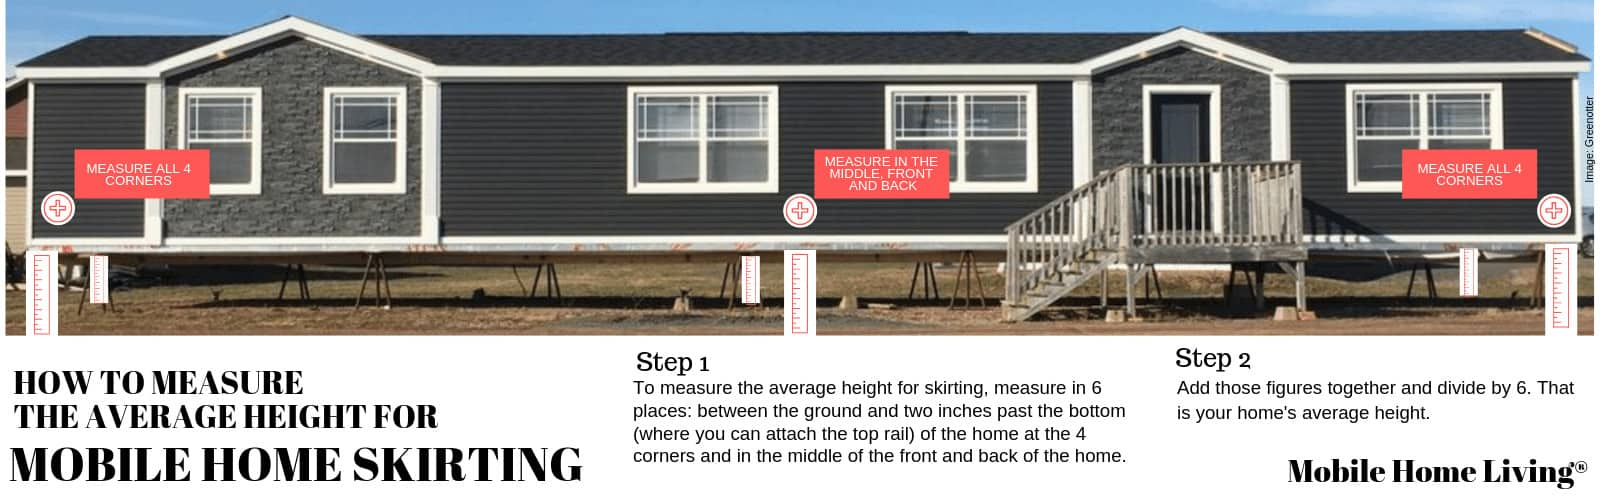 The Ultimate Mobile Home Skirting Guide   Mobile Home Living on metal homes, multi-family homes, trailer homes, colorado homes, miniature homes, ranch homes, old homes, unique homes, portable homes, vacation homes, stilt homes, awnings for homes, townhouse homes, prefabricated homes, mega homes, victorian homes, brick homes, movable homes, rv homes, prefab homes,